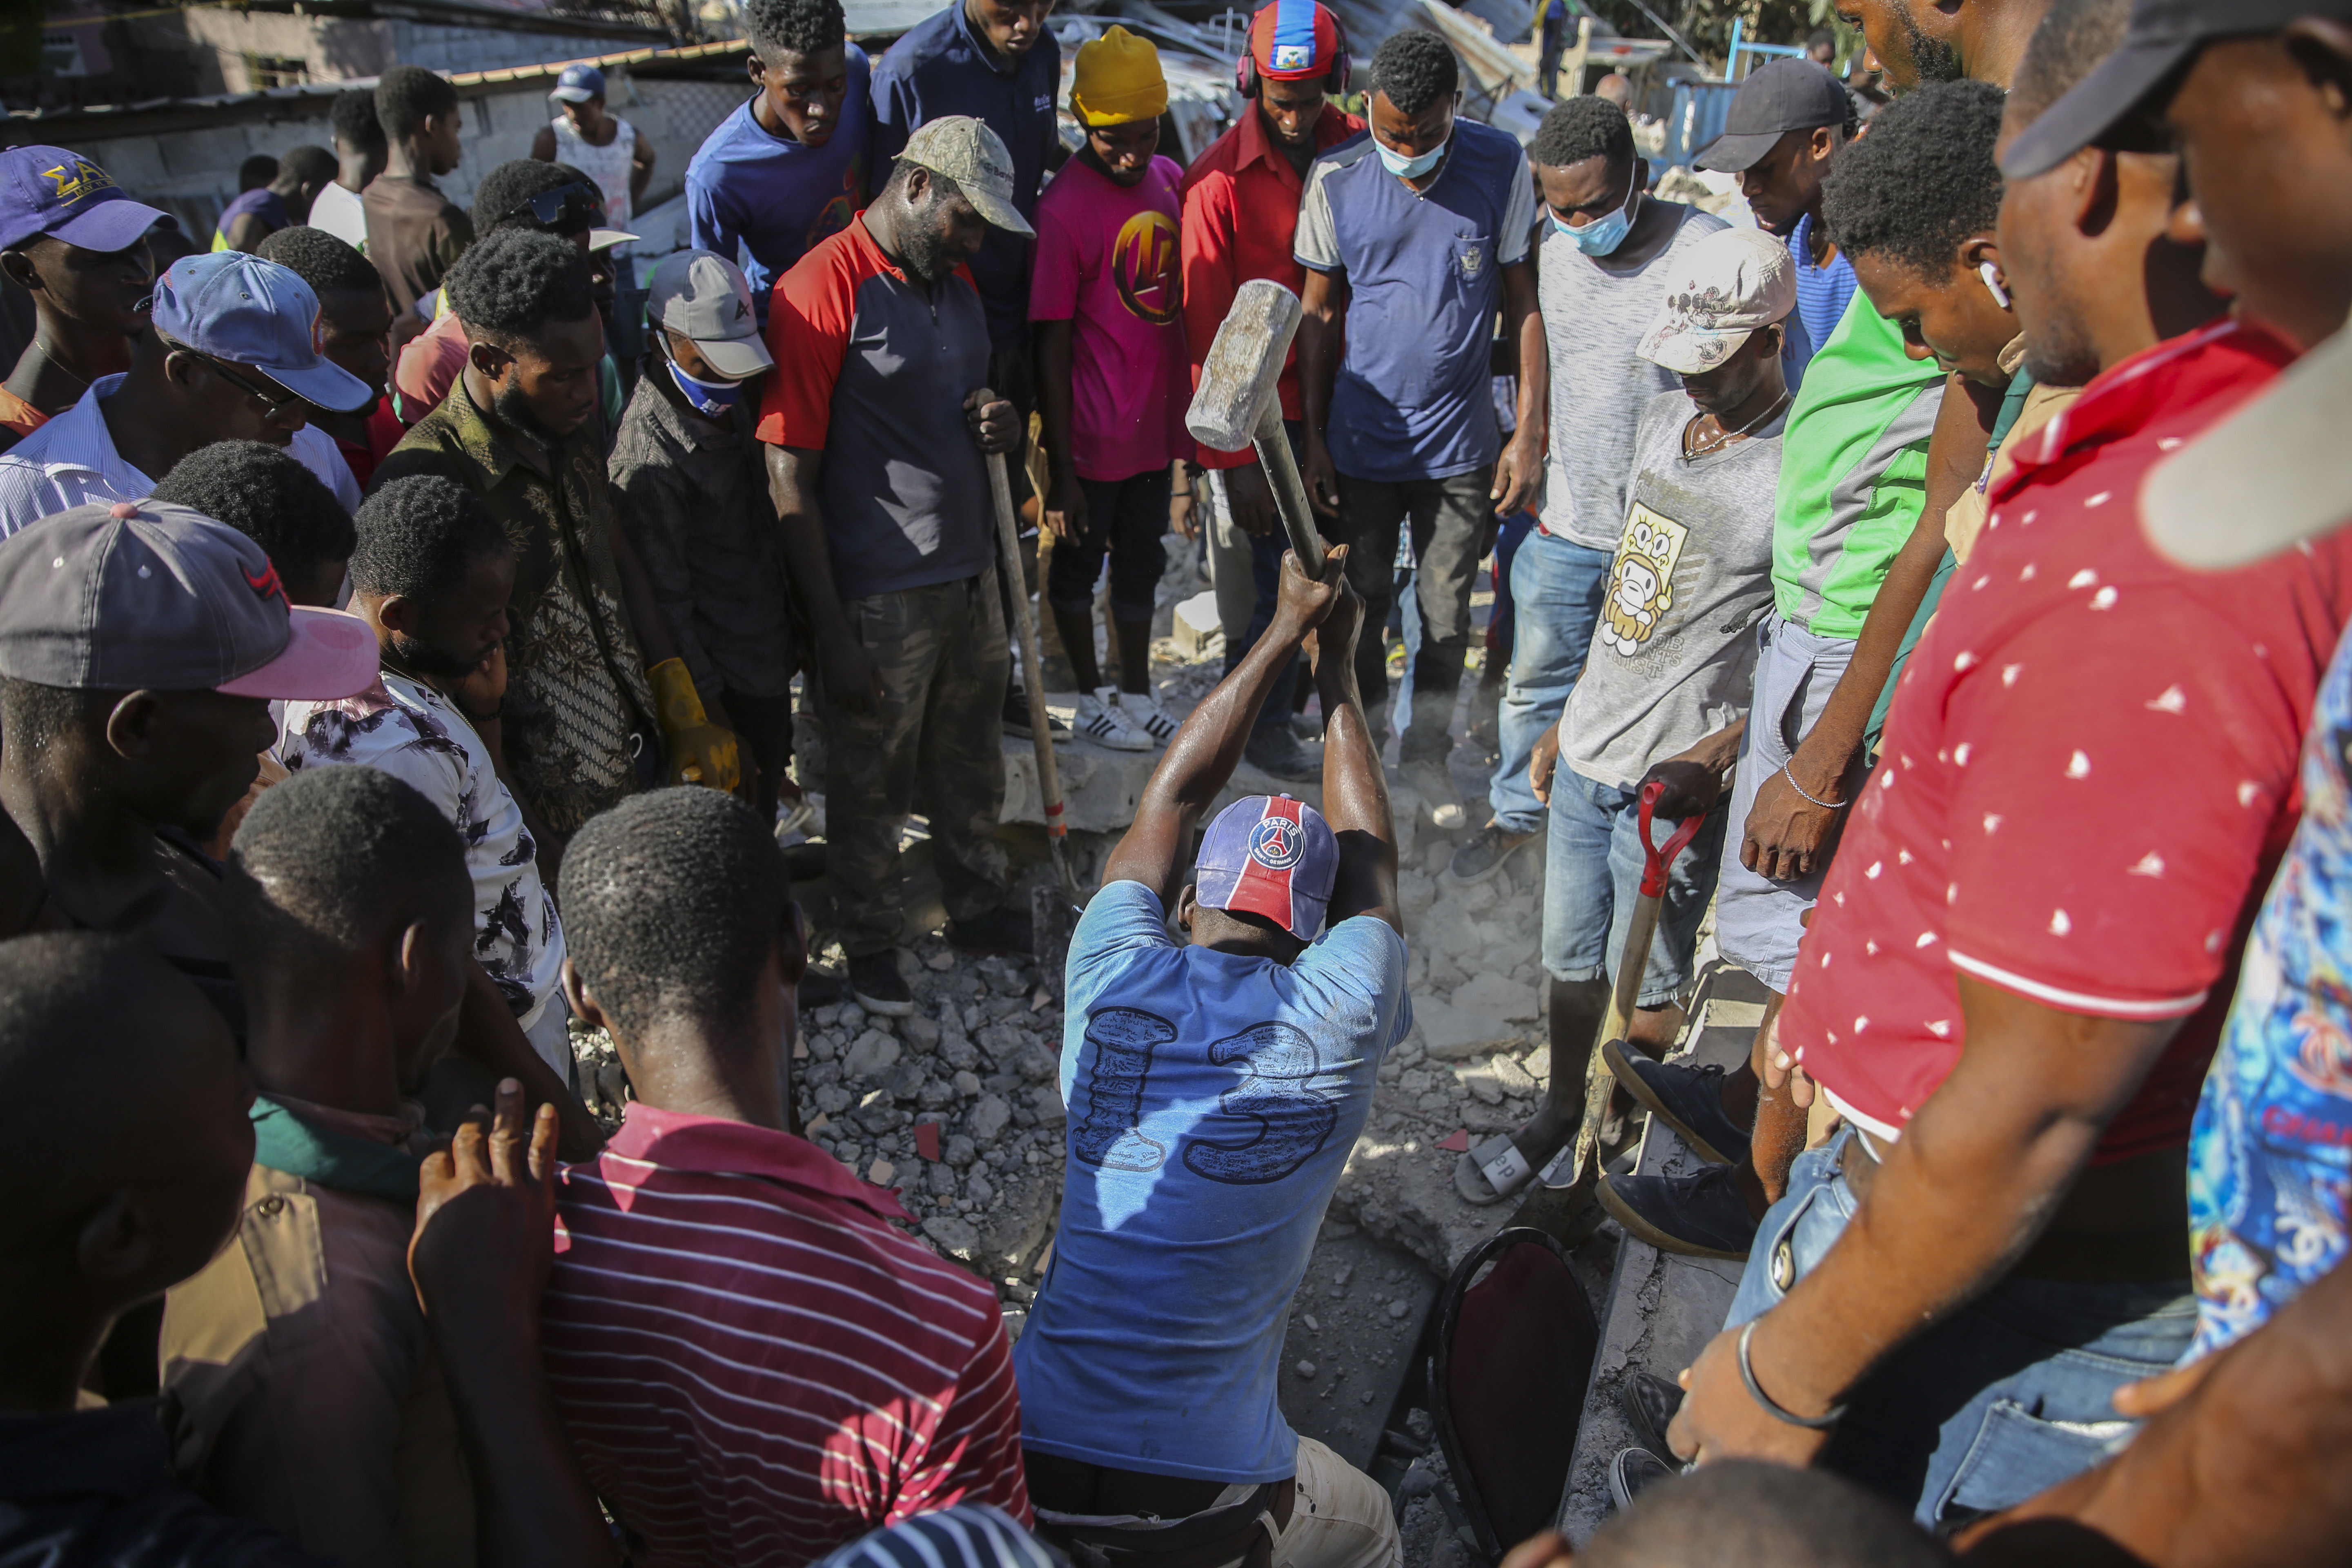 A man uses a sledgehammer in an attempt to rescue people from the rubble of a home destroyed following a 7.2 earthquake, in Les Cayes, Haiti, on August 14.